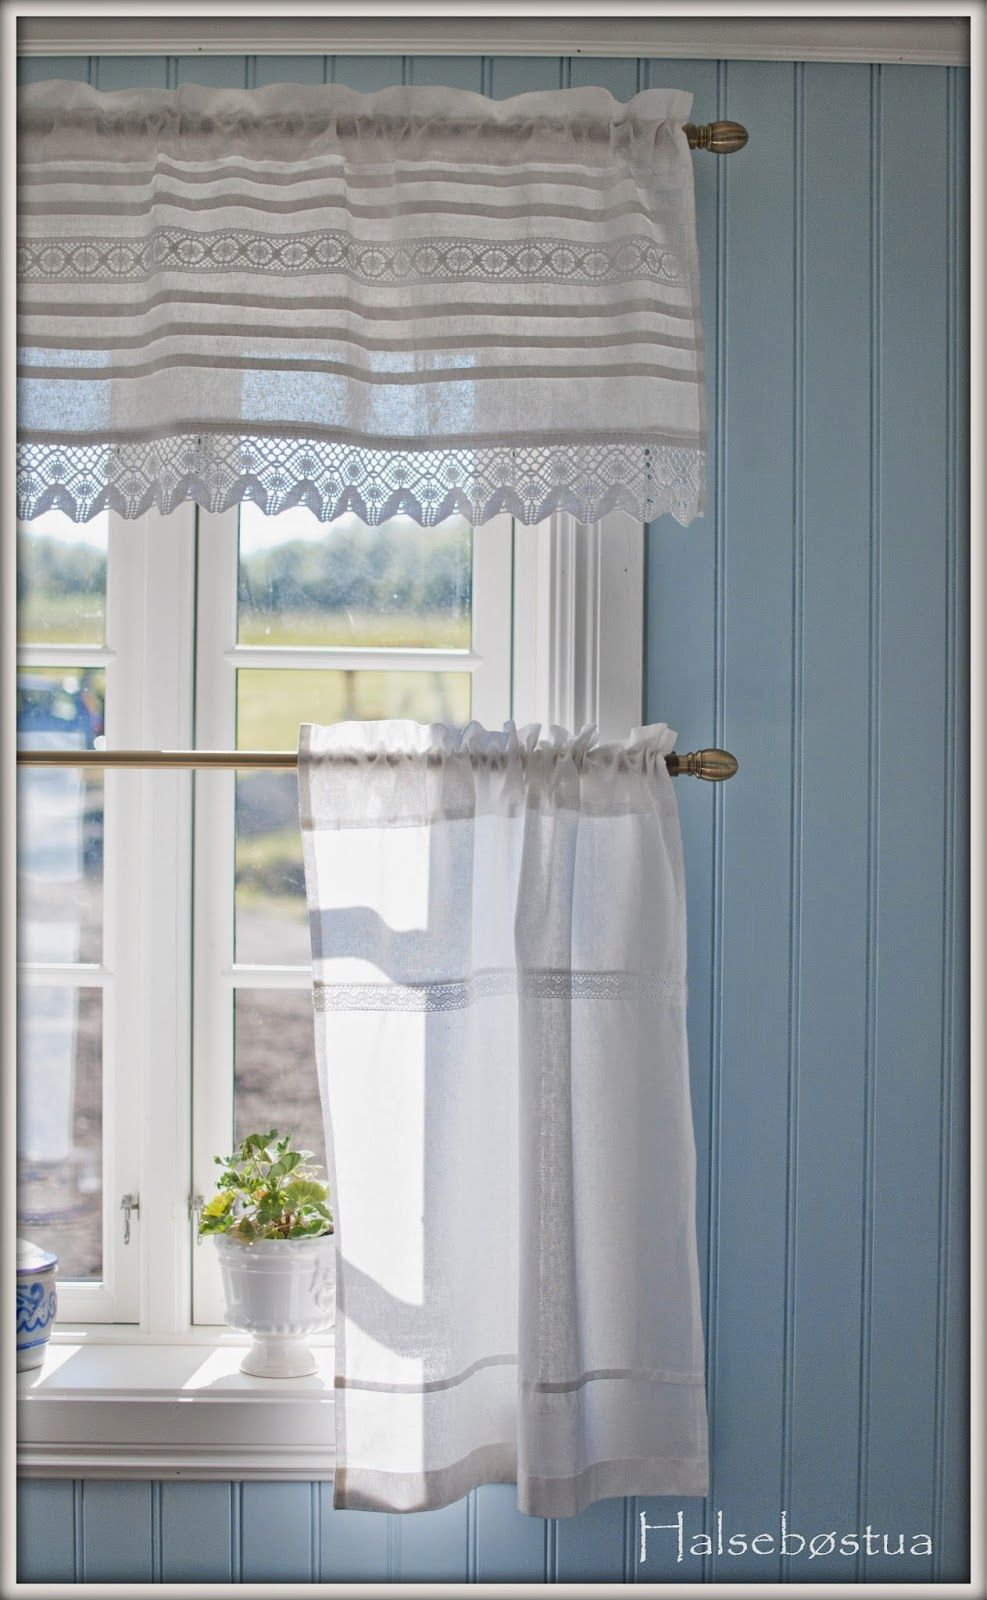 Windows & walls | Curtains | Pinterest | Fenster und türen, Fenster ...